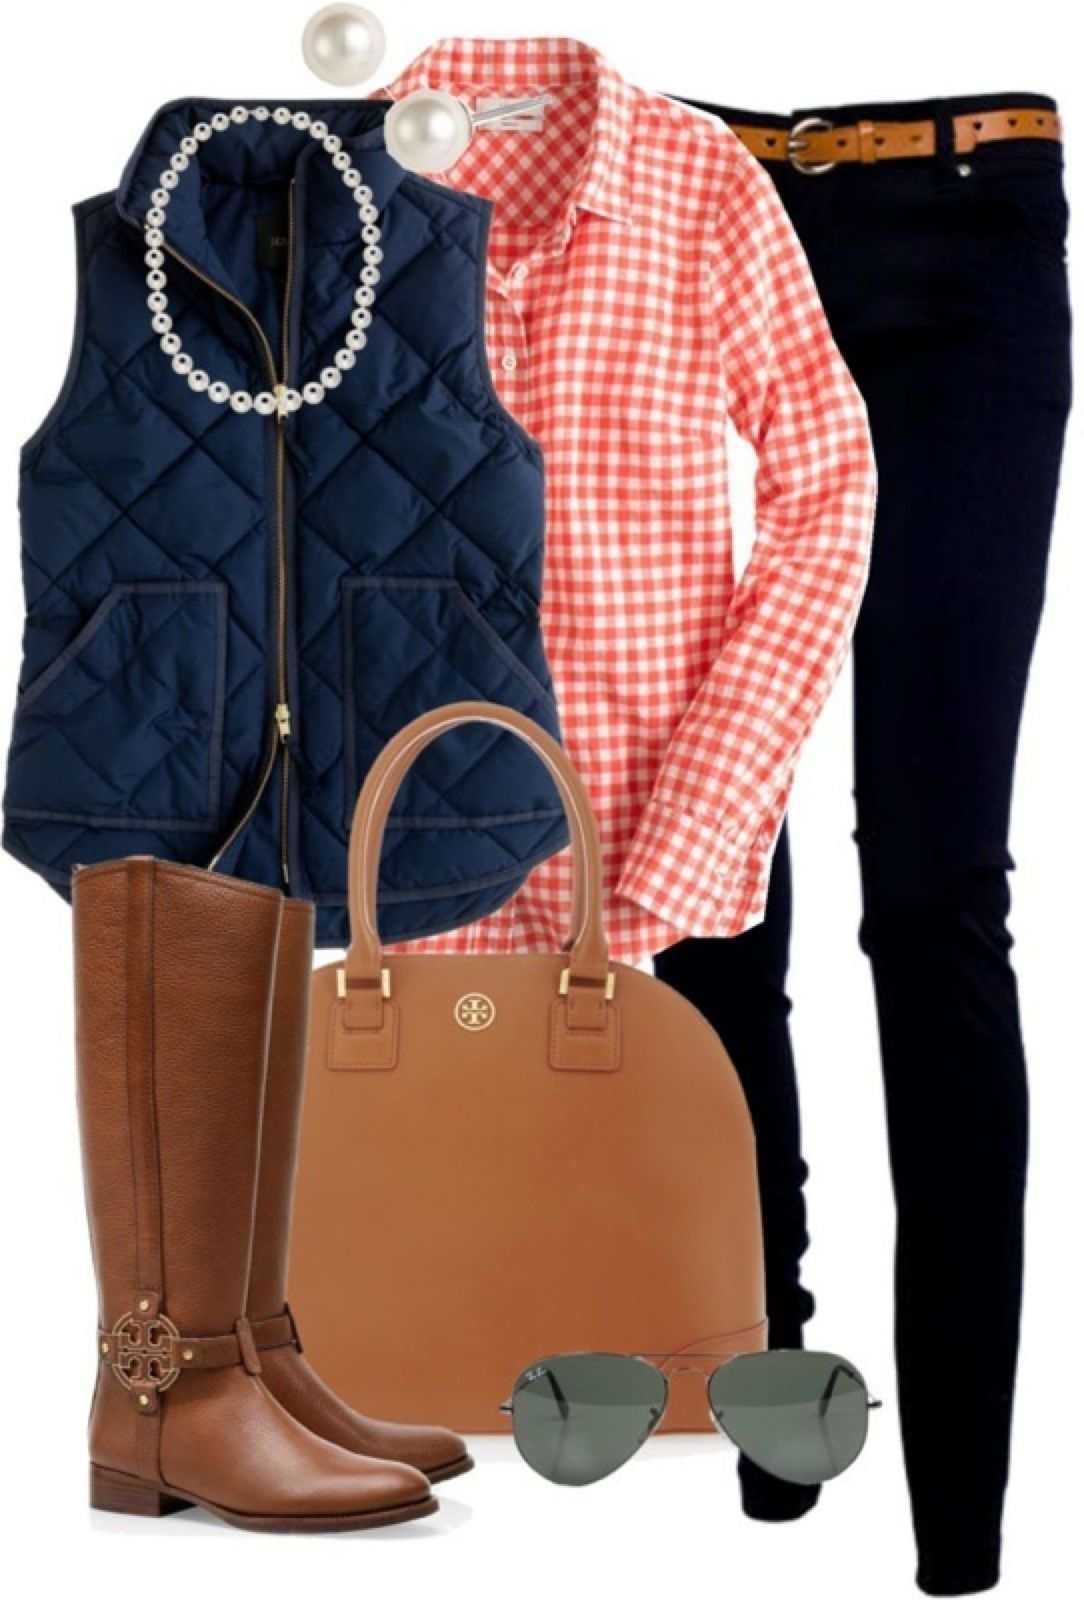 Flannel with jeans and boots  Vest Red Flannel Jeans Boots and Pearls  Stitch Fix  Pinterest